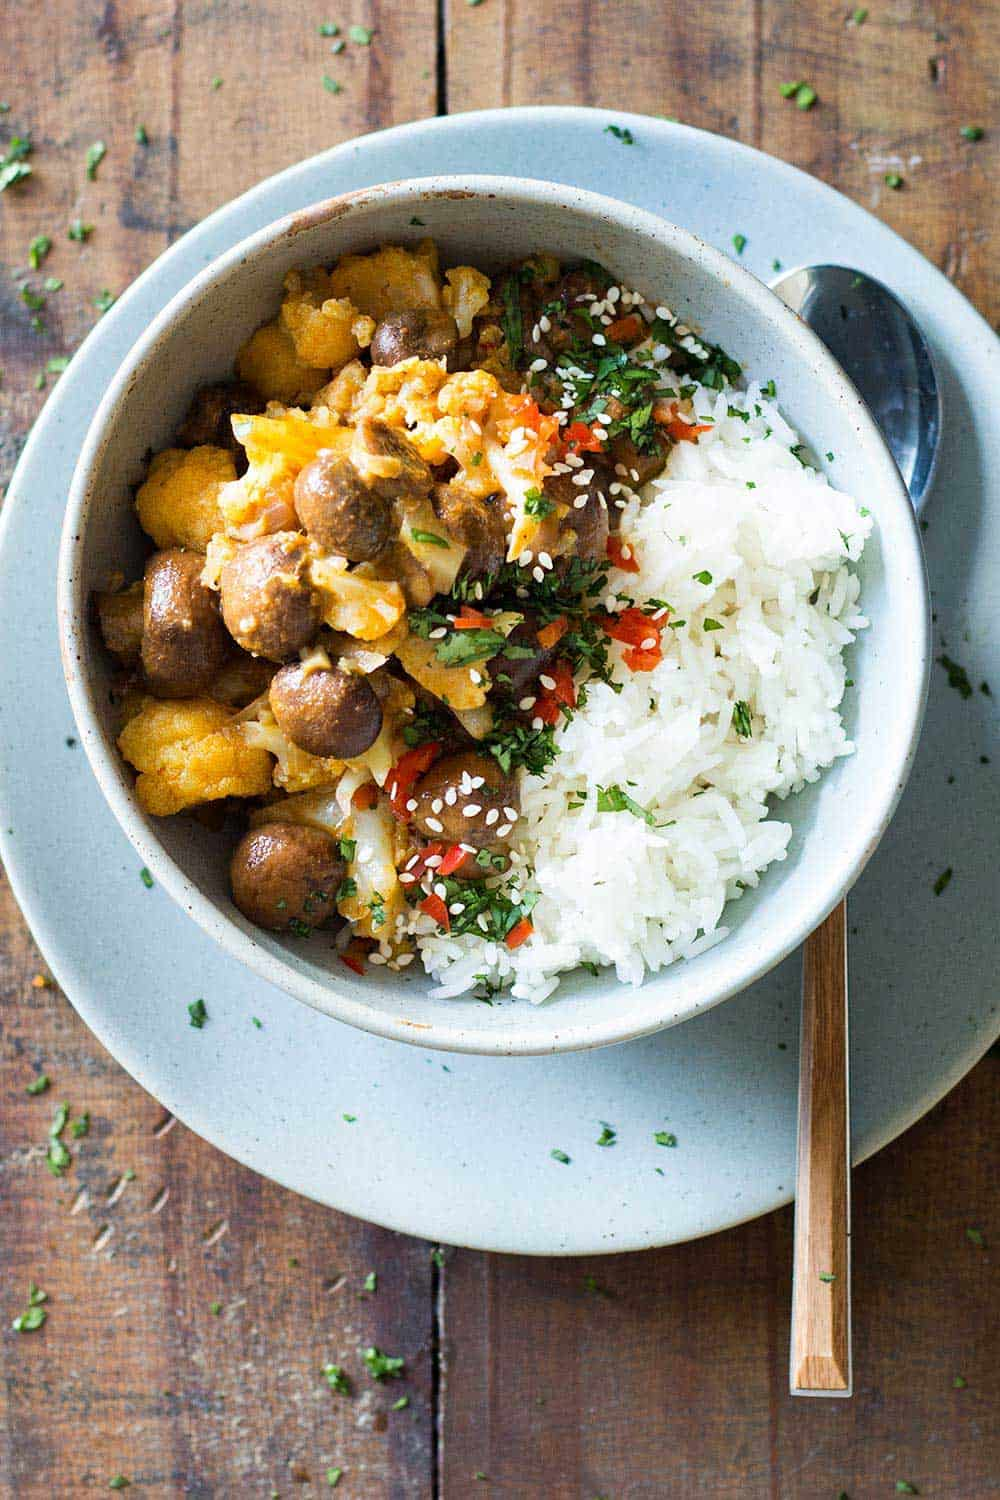 Vegan yellow curry + 15 Farmers market recipes to make in March! Delicious, vegetarian, late winter/ early spring, (mostly) healthy recipes made with fresh, seasonal produce from your local farmers market or CSA bin. Eat local!